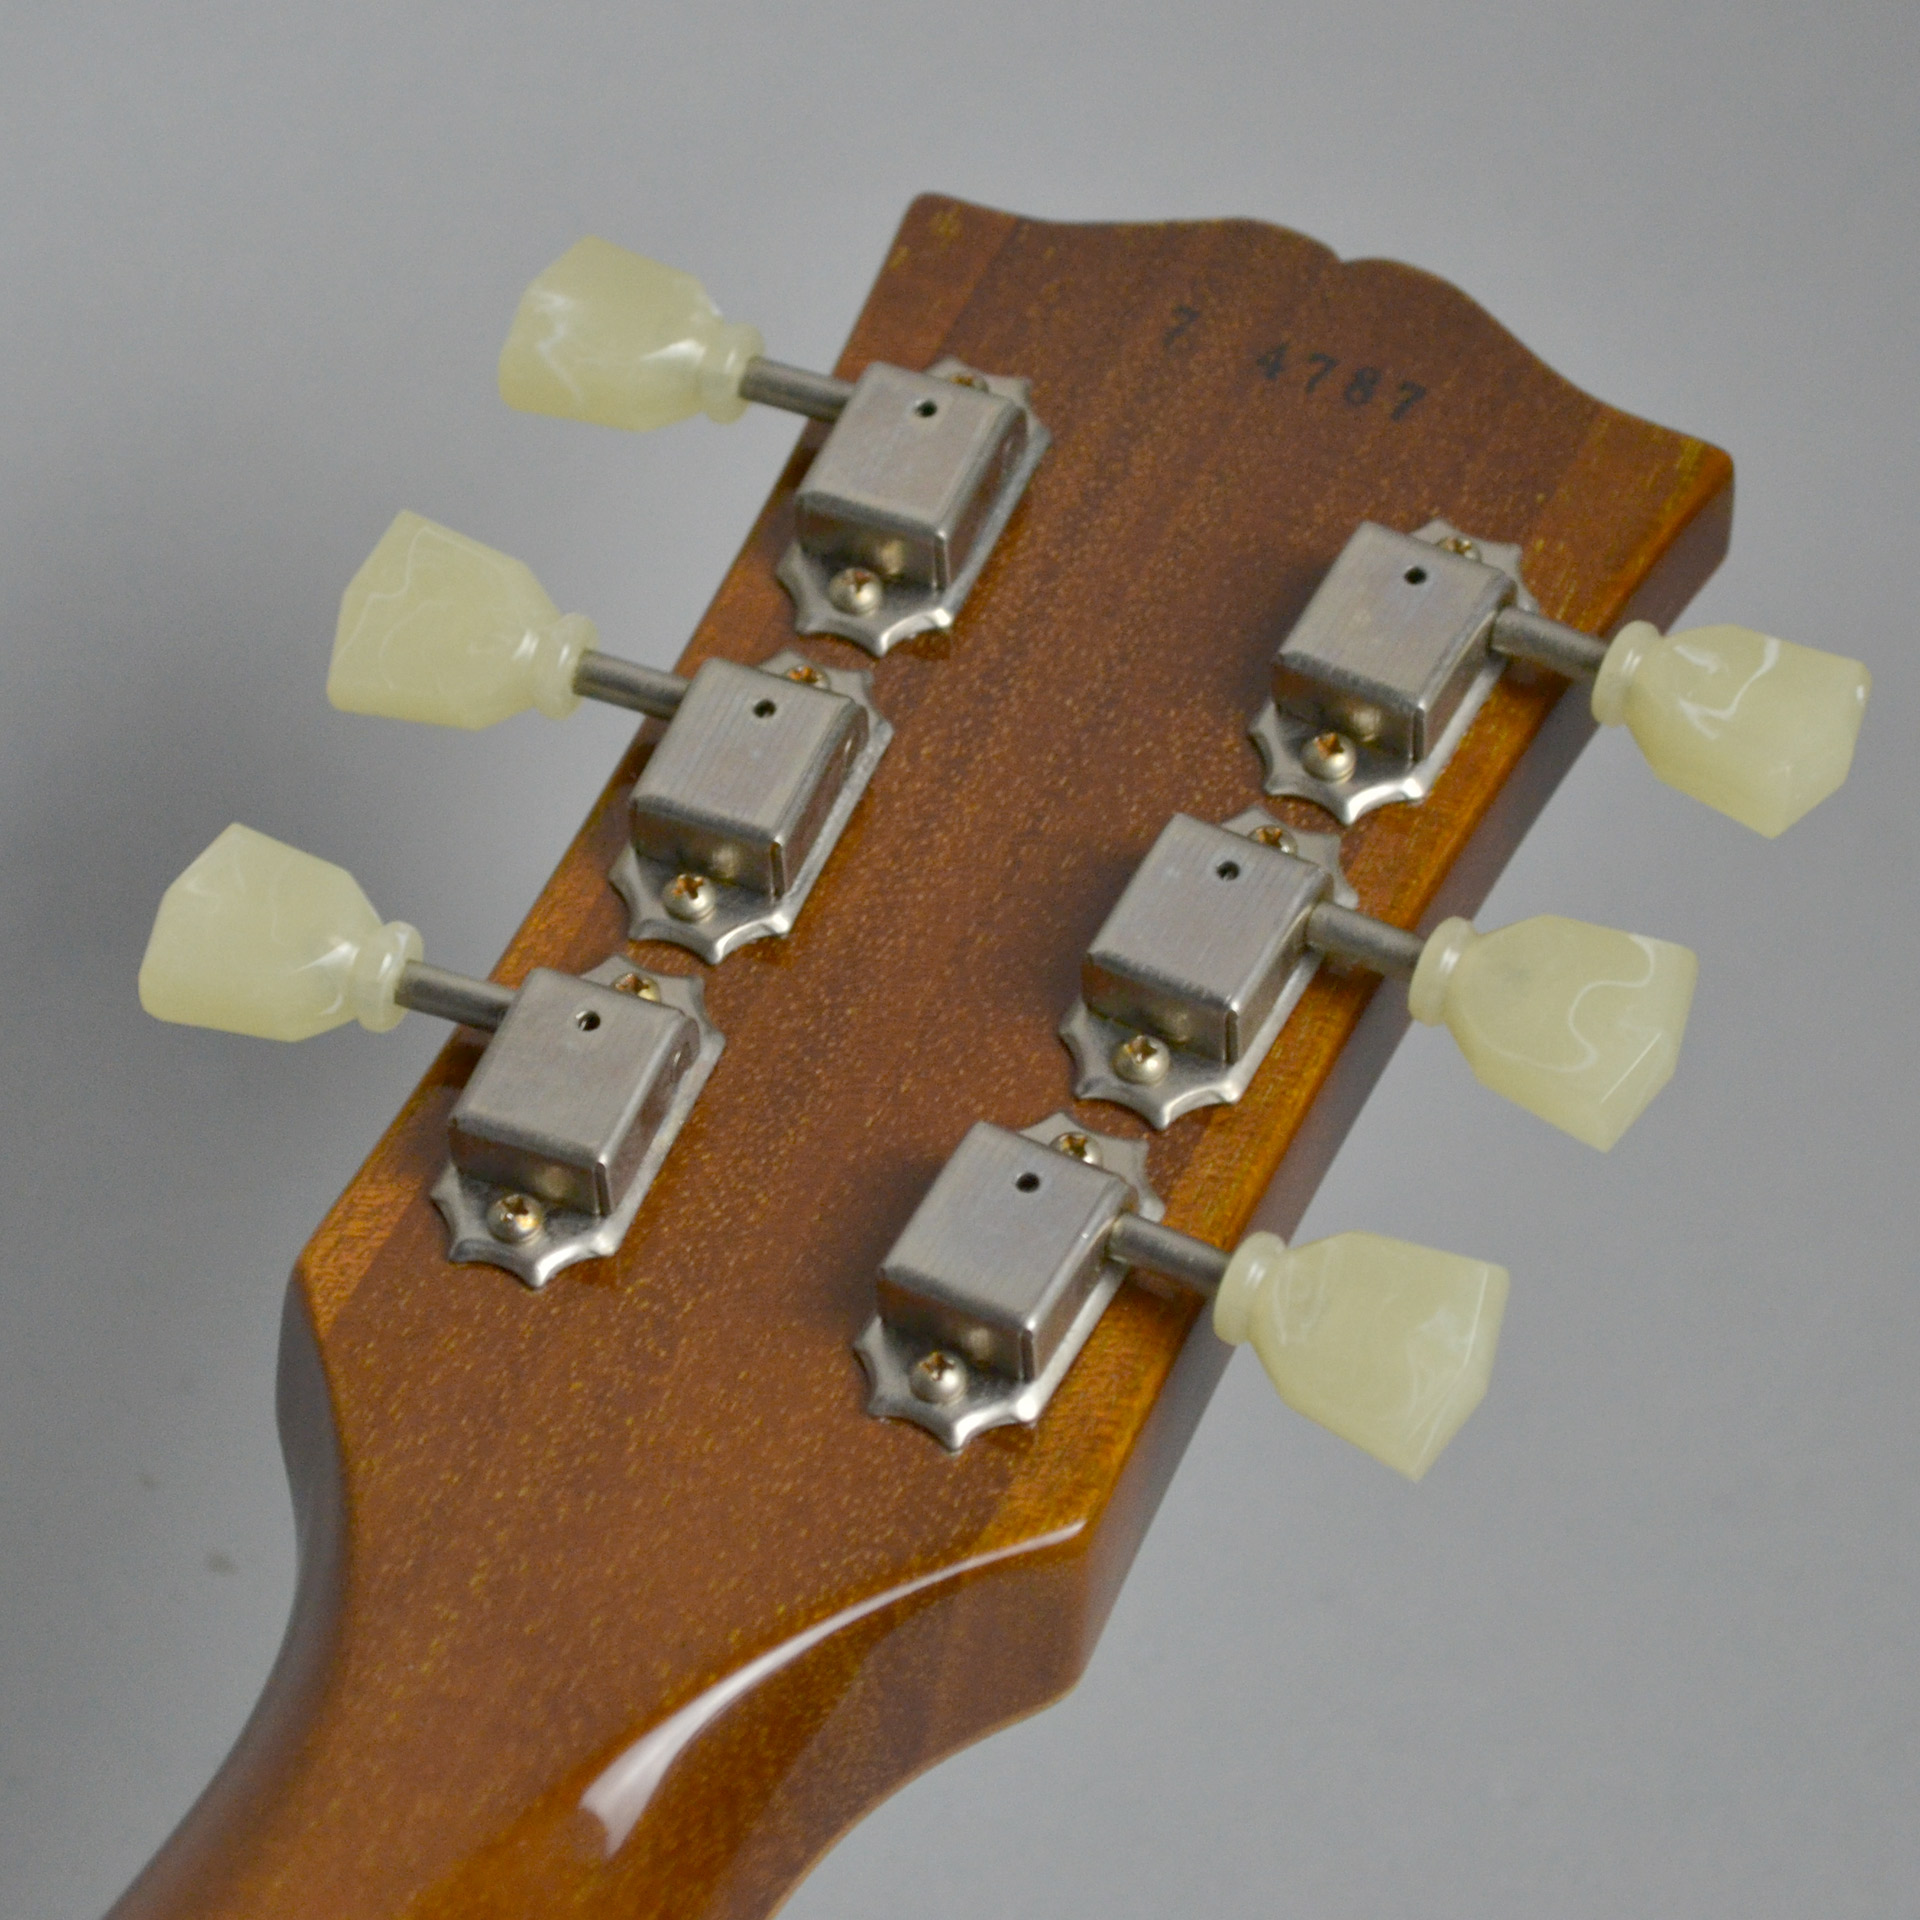 Standard Historic 1957 Les Paul Gold Top VOSのケース・その他画像